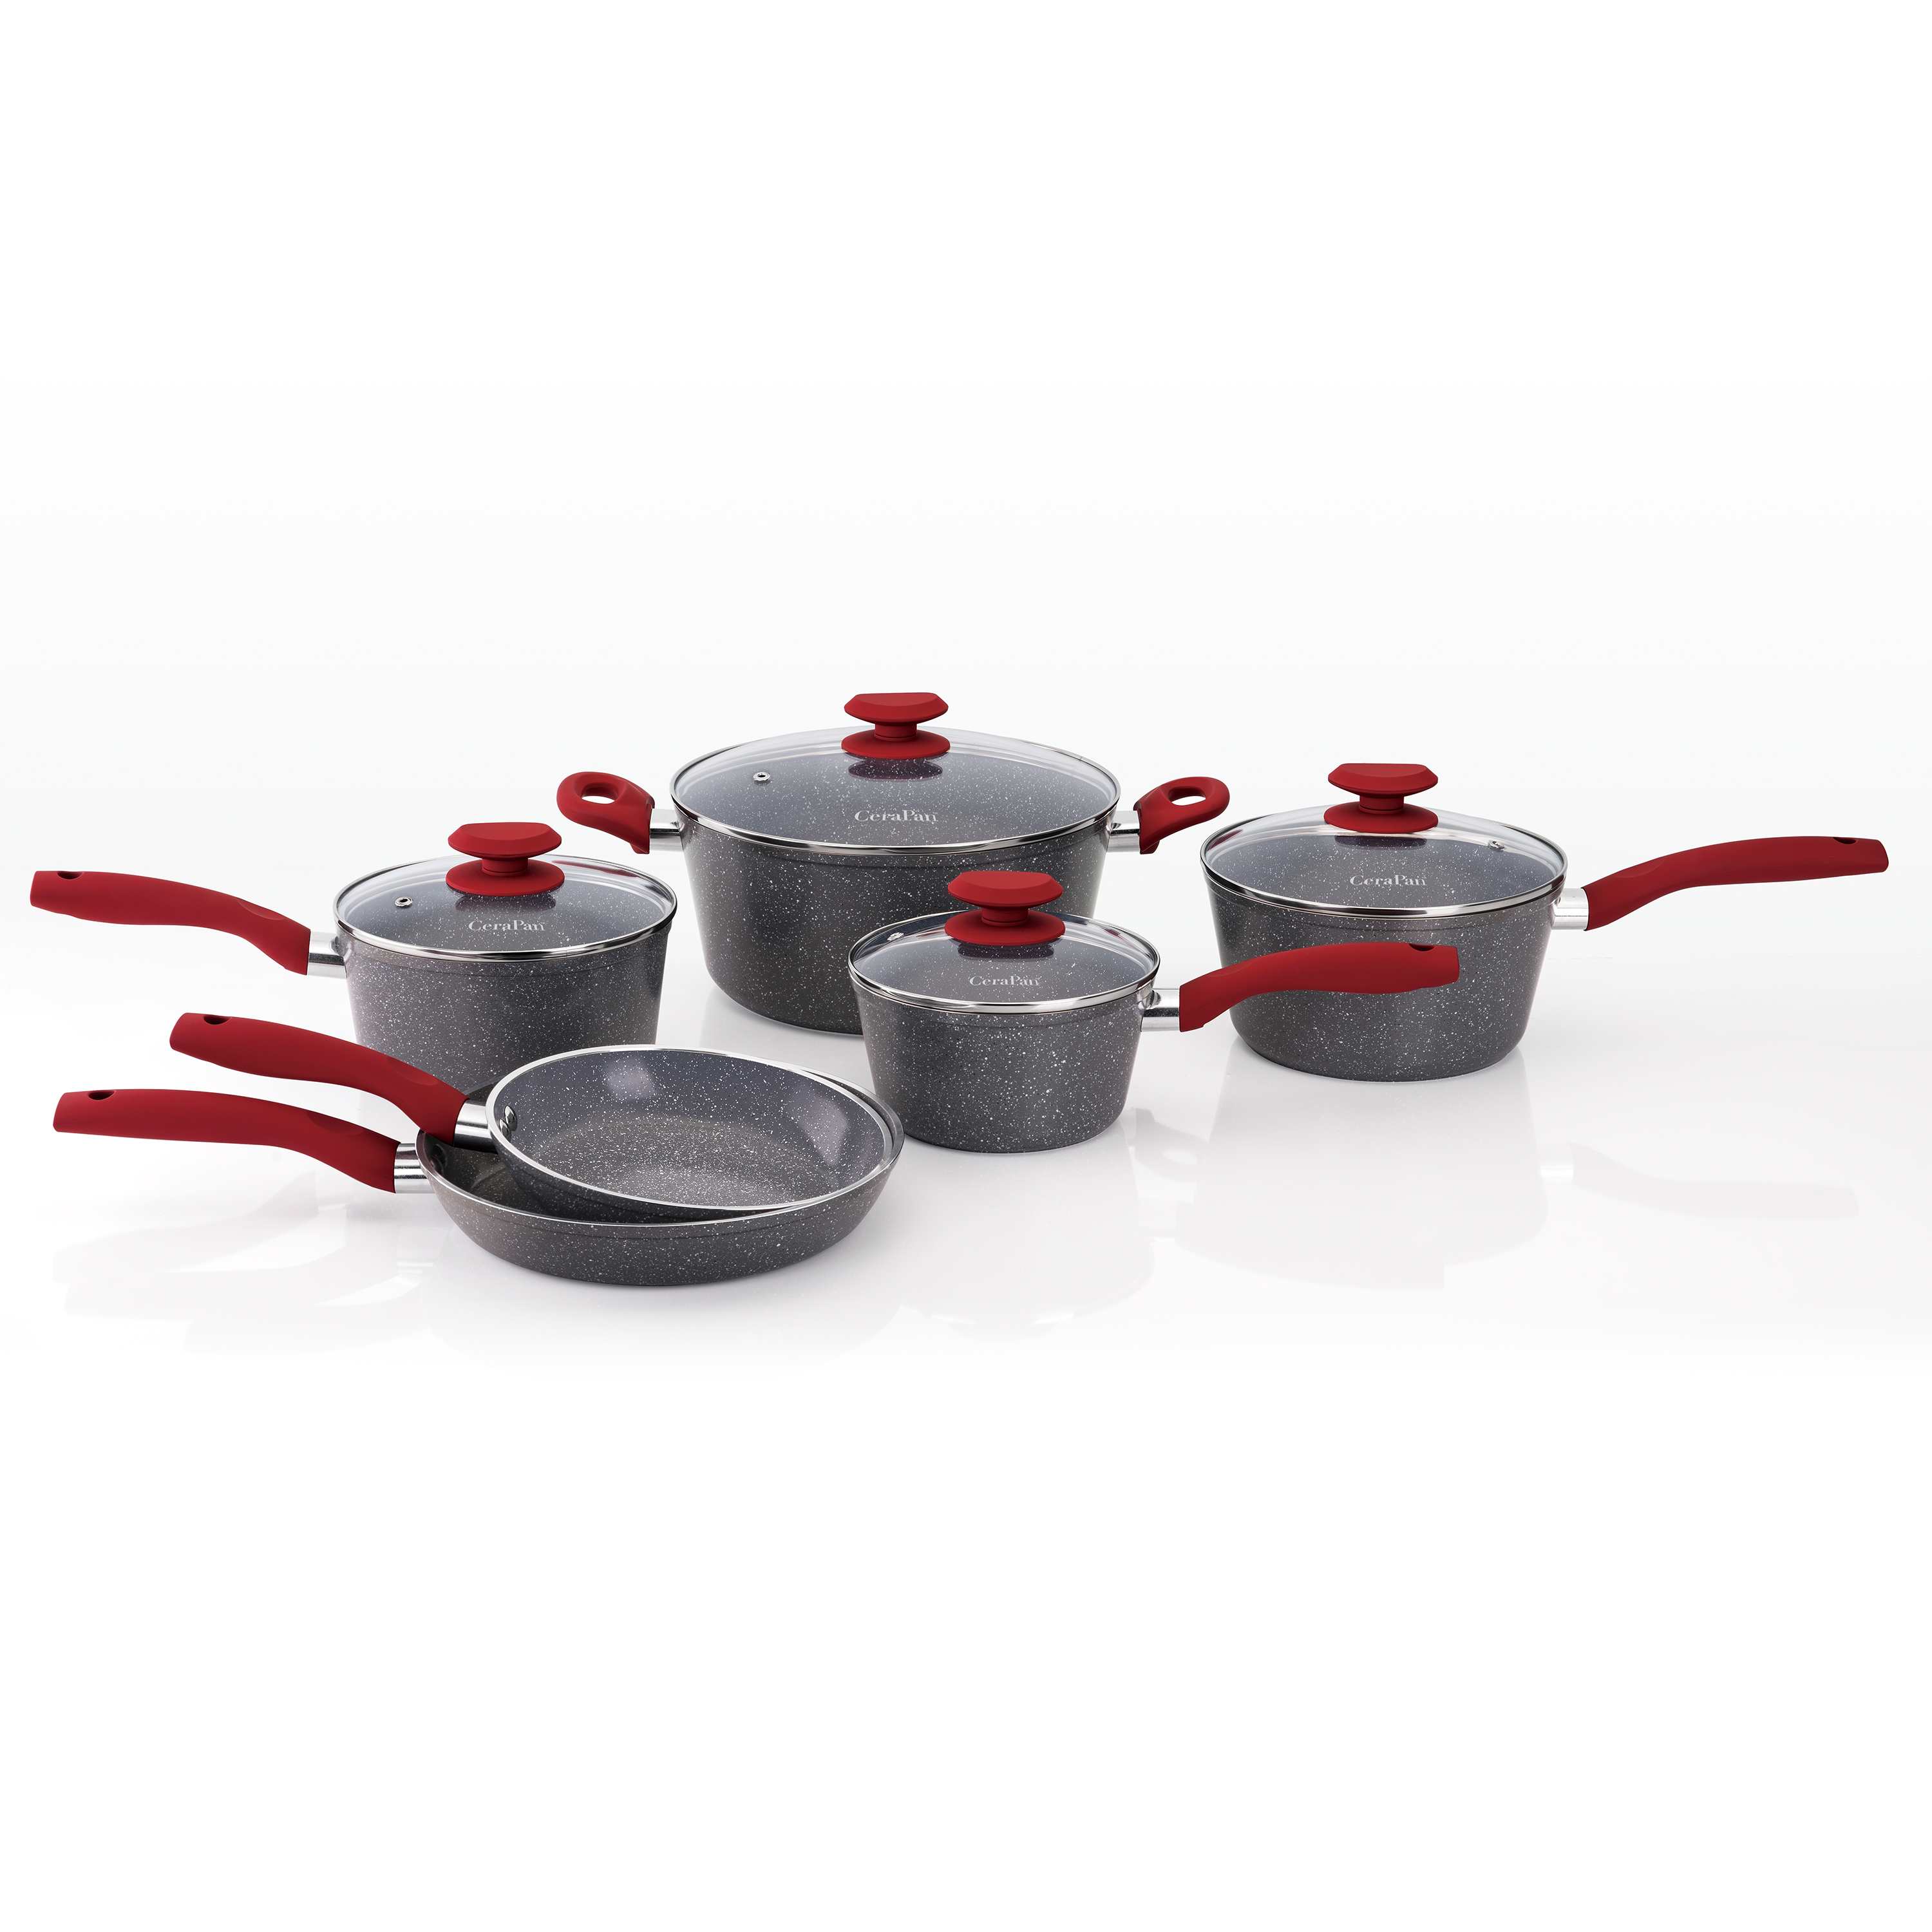 Mainstays Marble Hill Ceramic Non-stick 10-piece Cookware Set, Gray